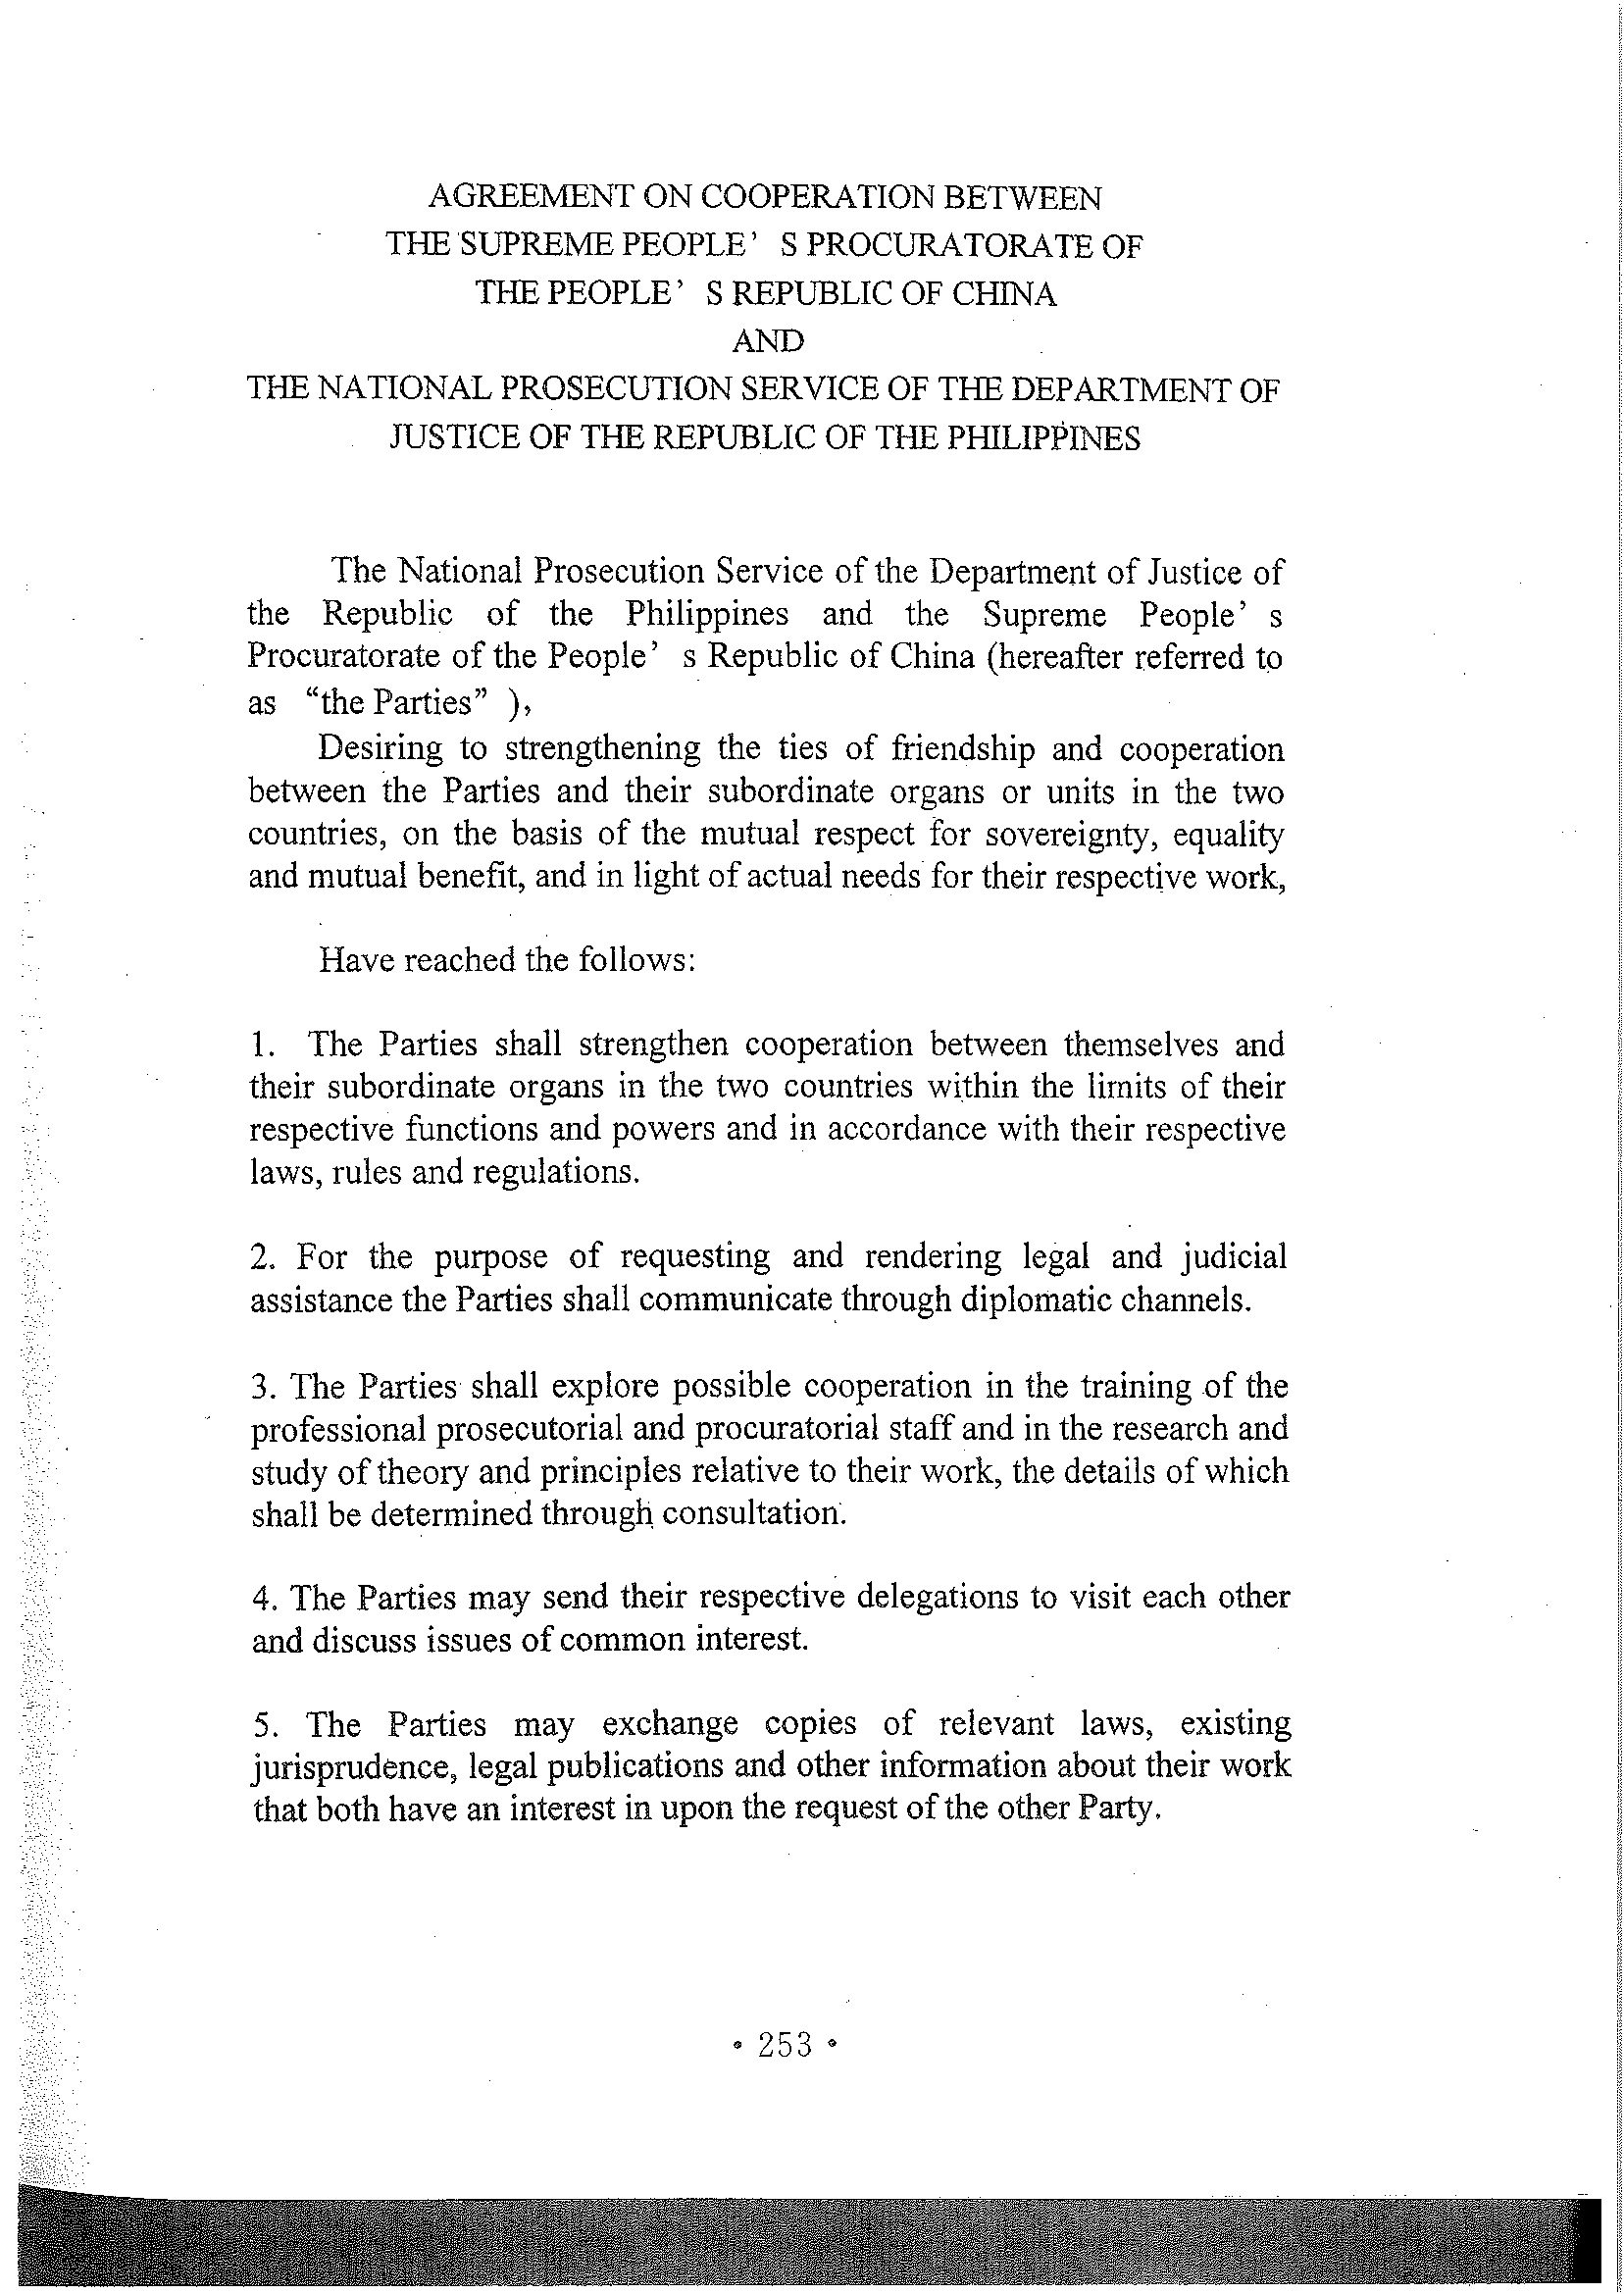 Agreement On Cooperation Between The Supreme Peopleu0027s Procuratorate Of P.R  China And The National Prosecution Service Of The Department Of Justice Of  The ...